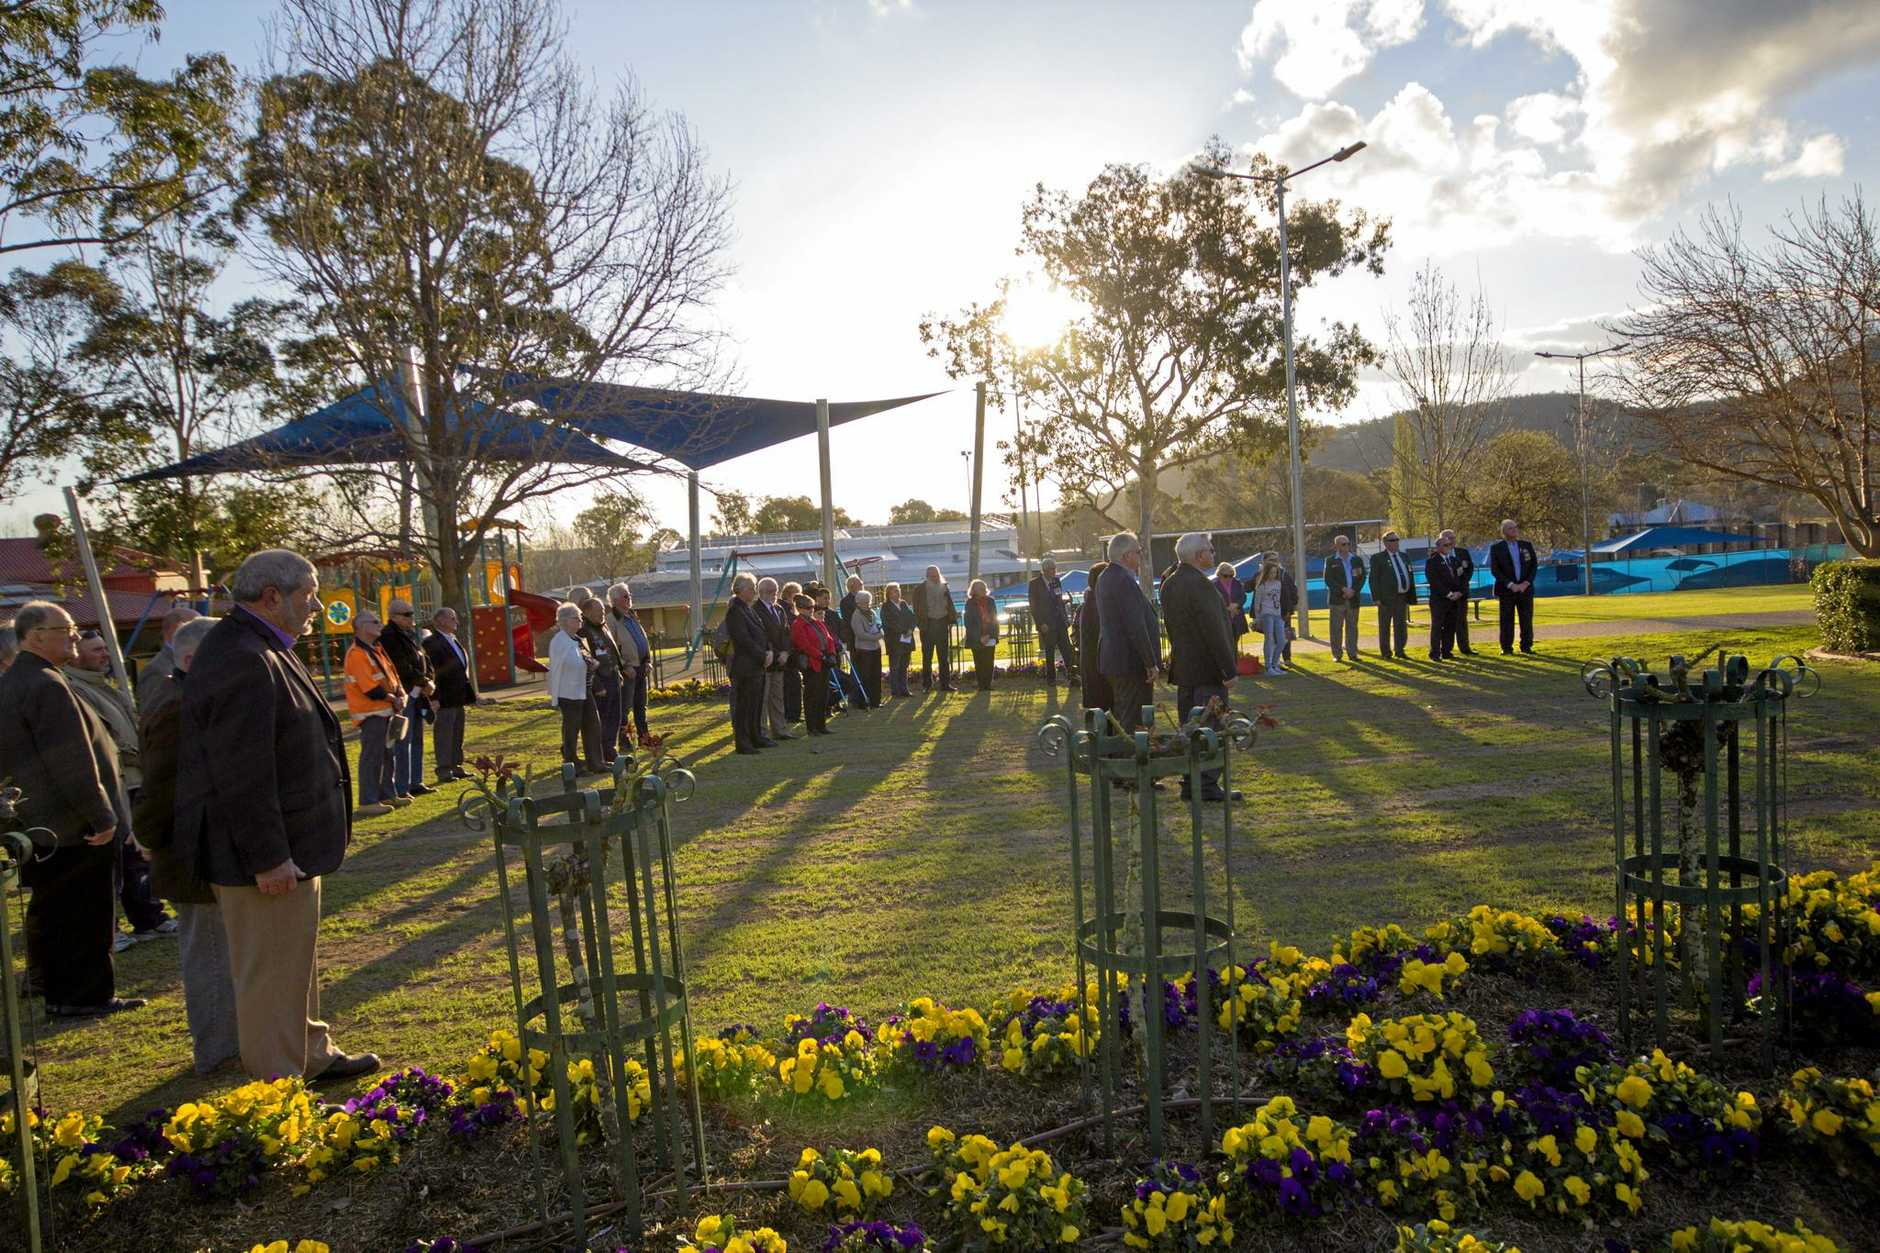 Vietnam veterans joined with the community in Stanthorpe on Thursday to commemorate the Battle of Long Tan.